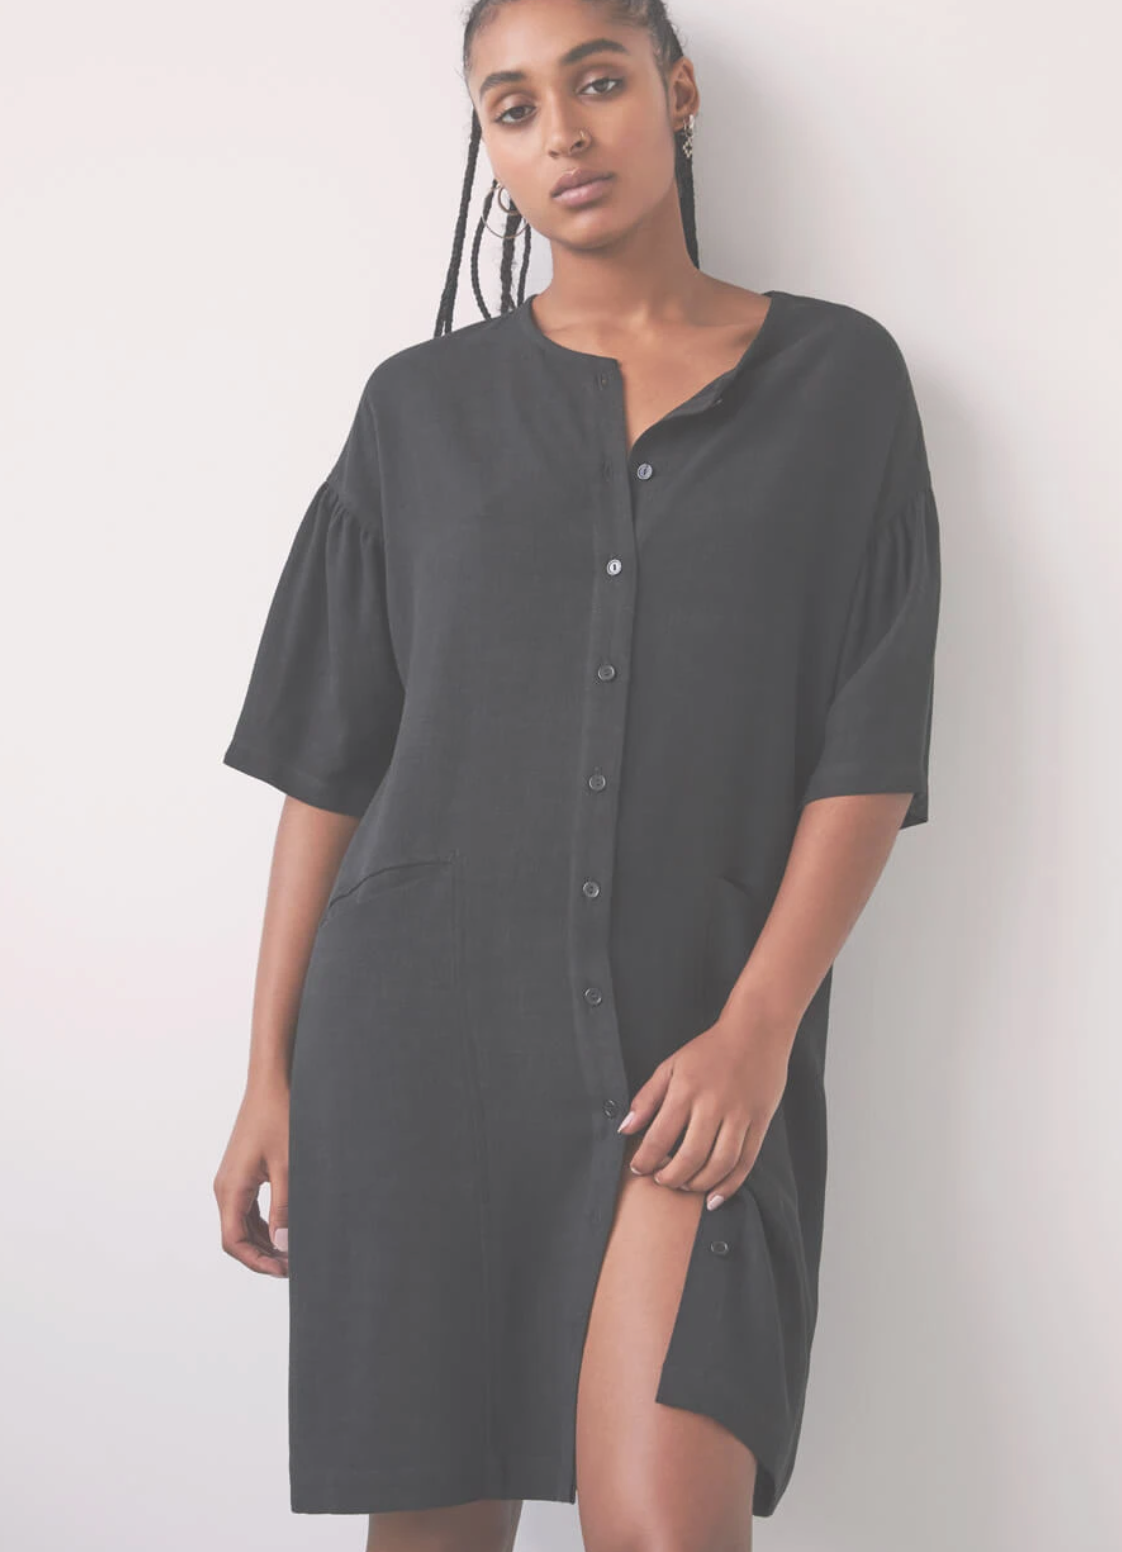 Poesie Shirt Dress, Black